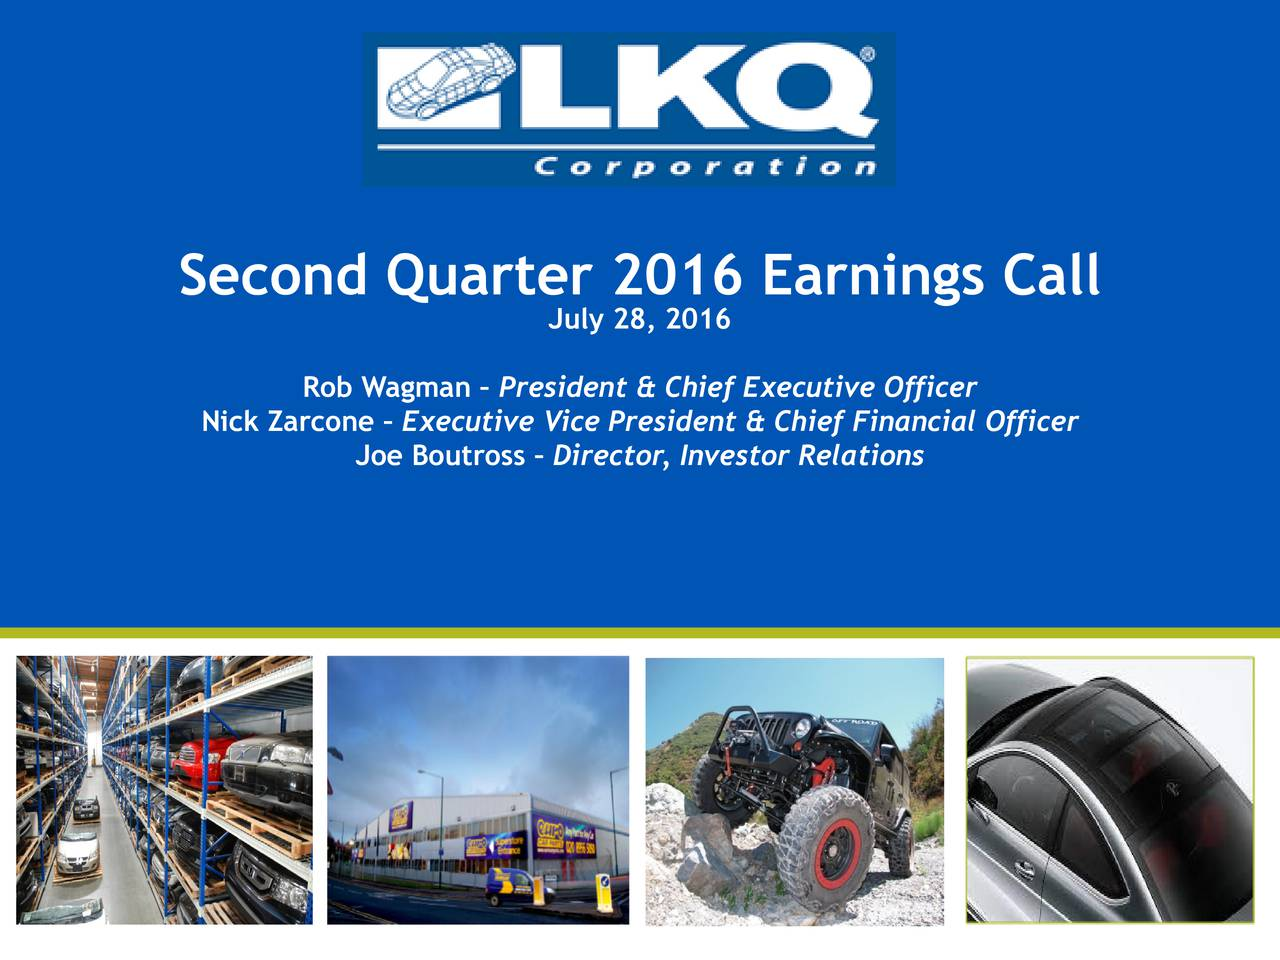 0   85   180 LKQ Green 176   186   31 Second Quarter 2016 Earnings Call July28, 2016 LKQ Silver 132   137   140 Rob Wagman  President & Chief Executive Officer Keystone Gold Nick Zarcone  Executive Vice President & Chief Financial Officer 255   188   31 Joe Boutross  Director, Investor Relations KeyKool Secondary Blue 137   173   219 KeyKool Tertiary Blue 216   232   241 PicKYourPart Oraange 211   77   30 HDTruck Red 210   35   42 LKQ Gray 62   70   70